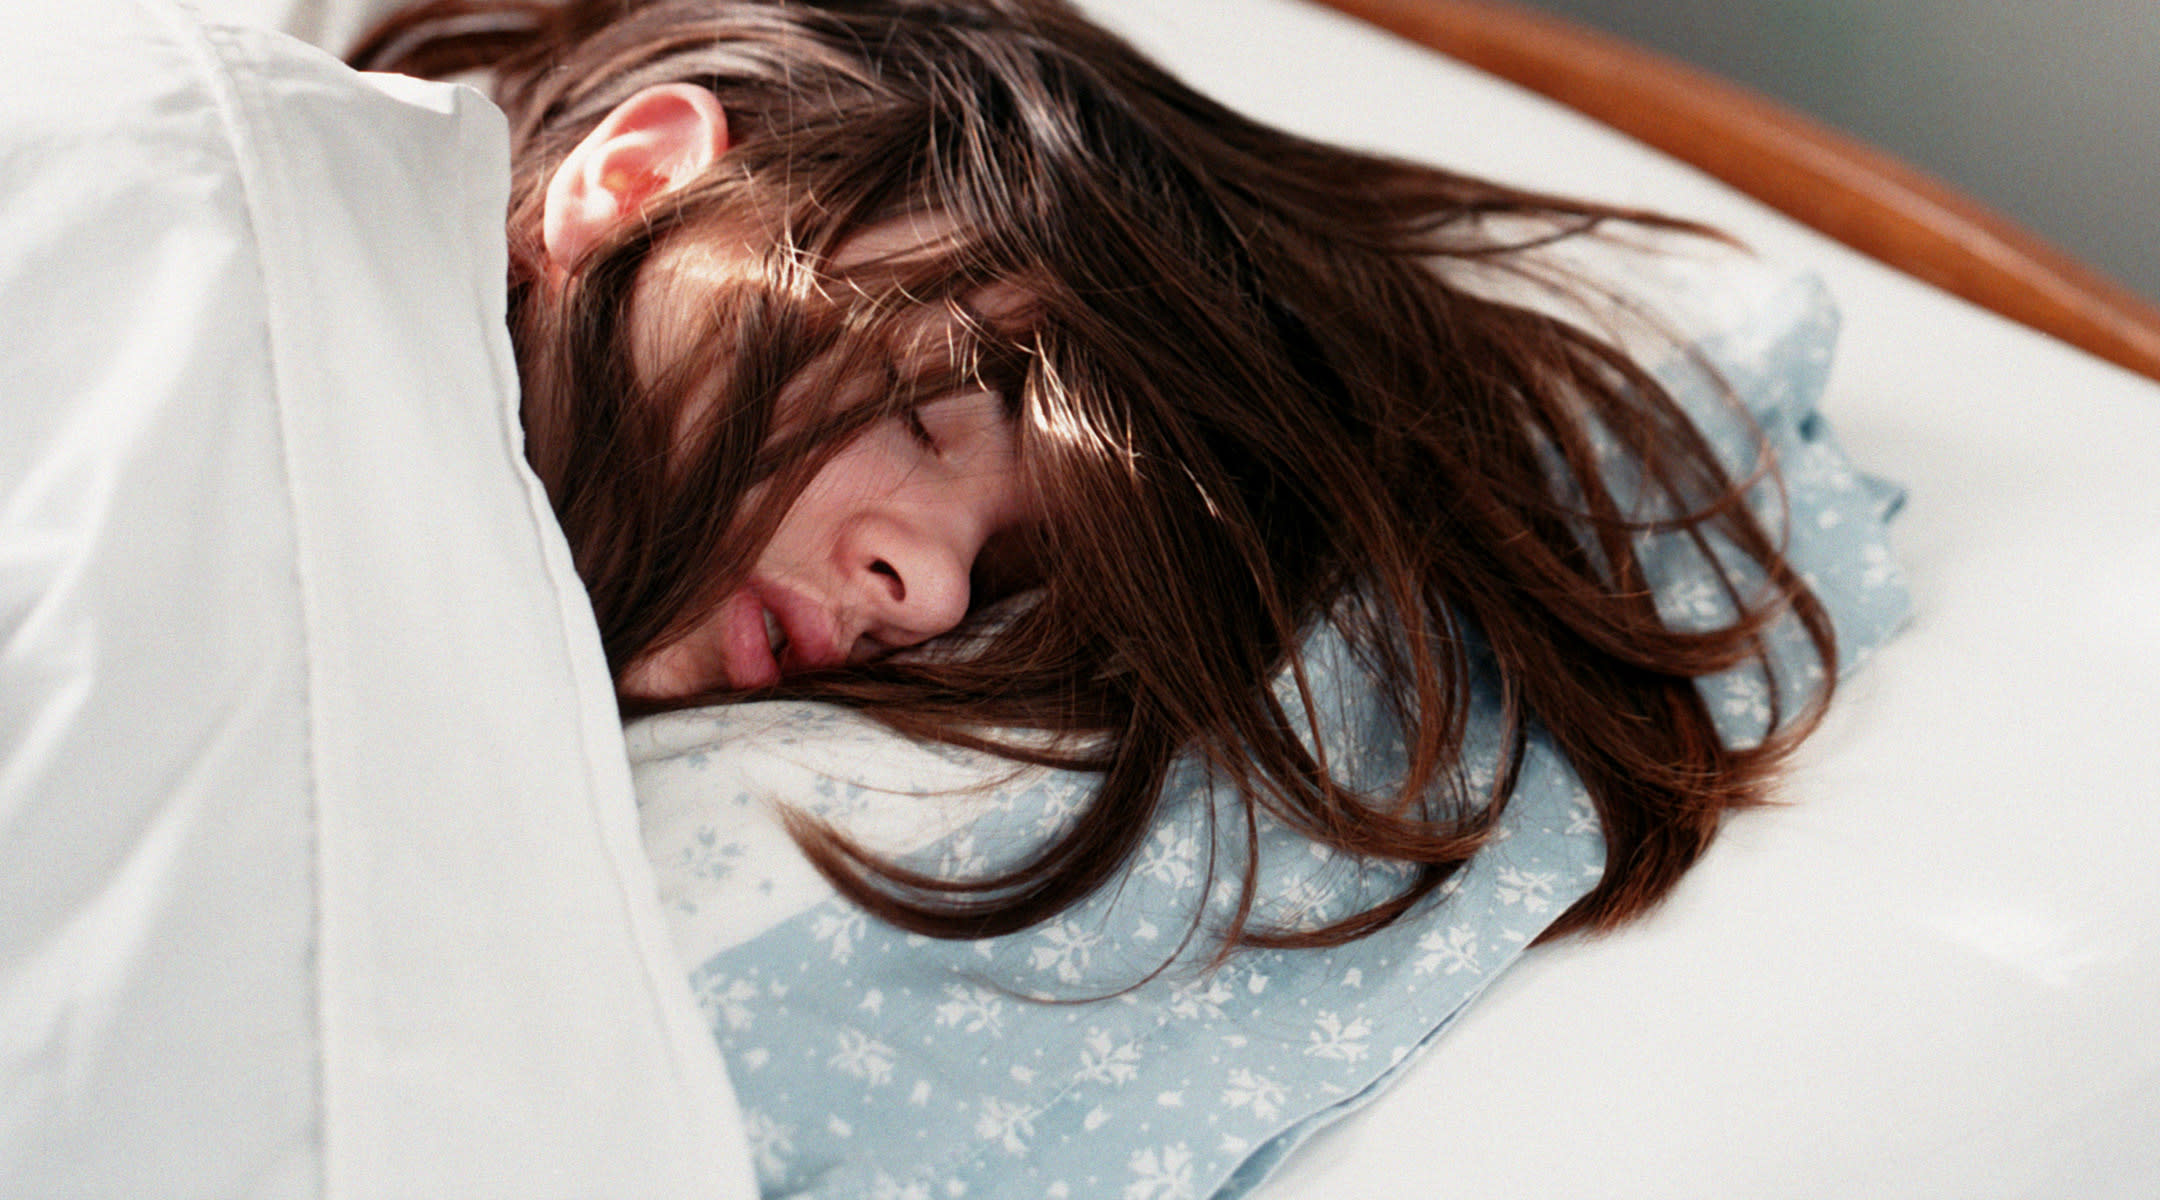 woman asleep on side in bed